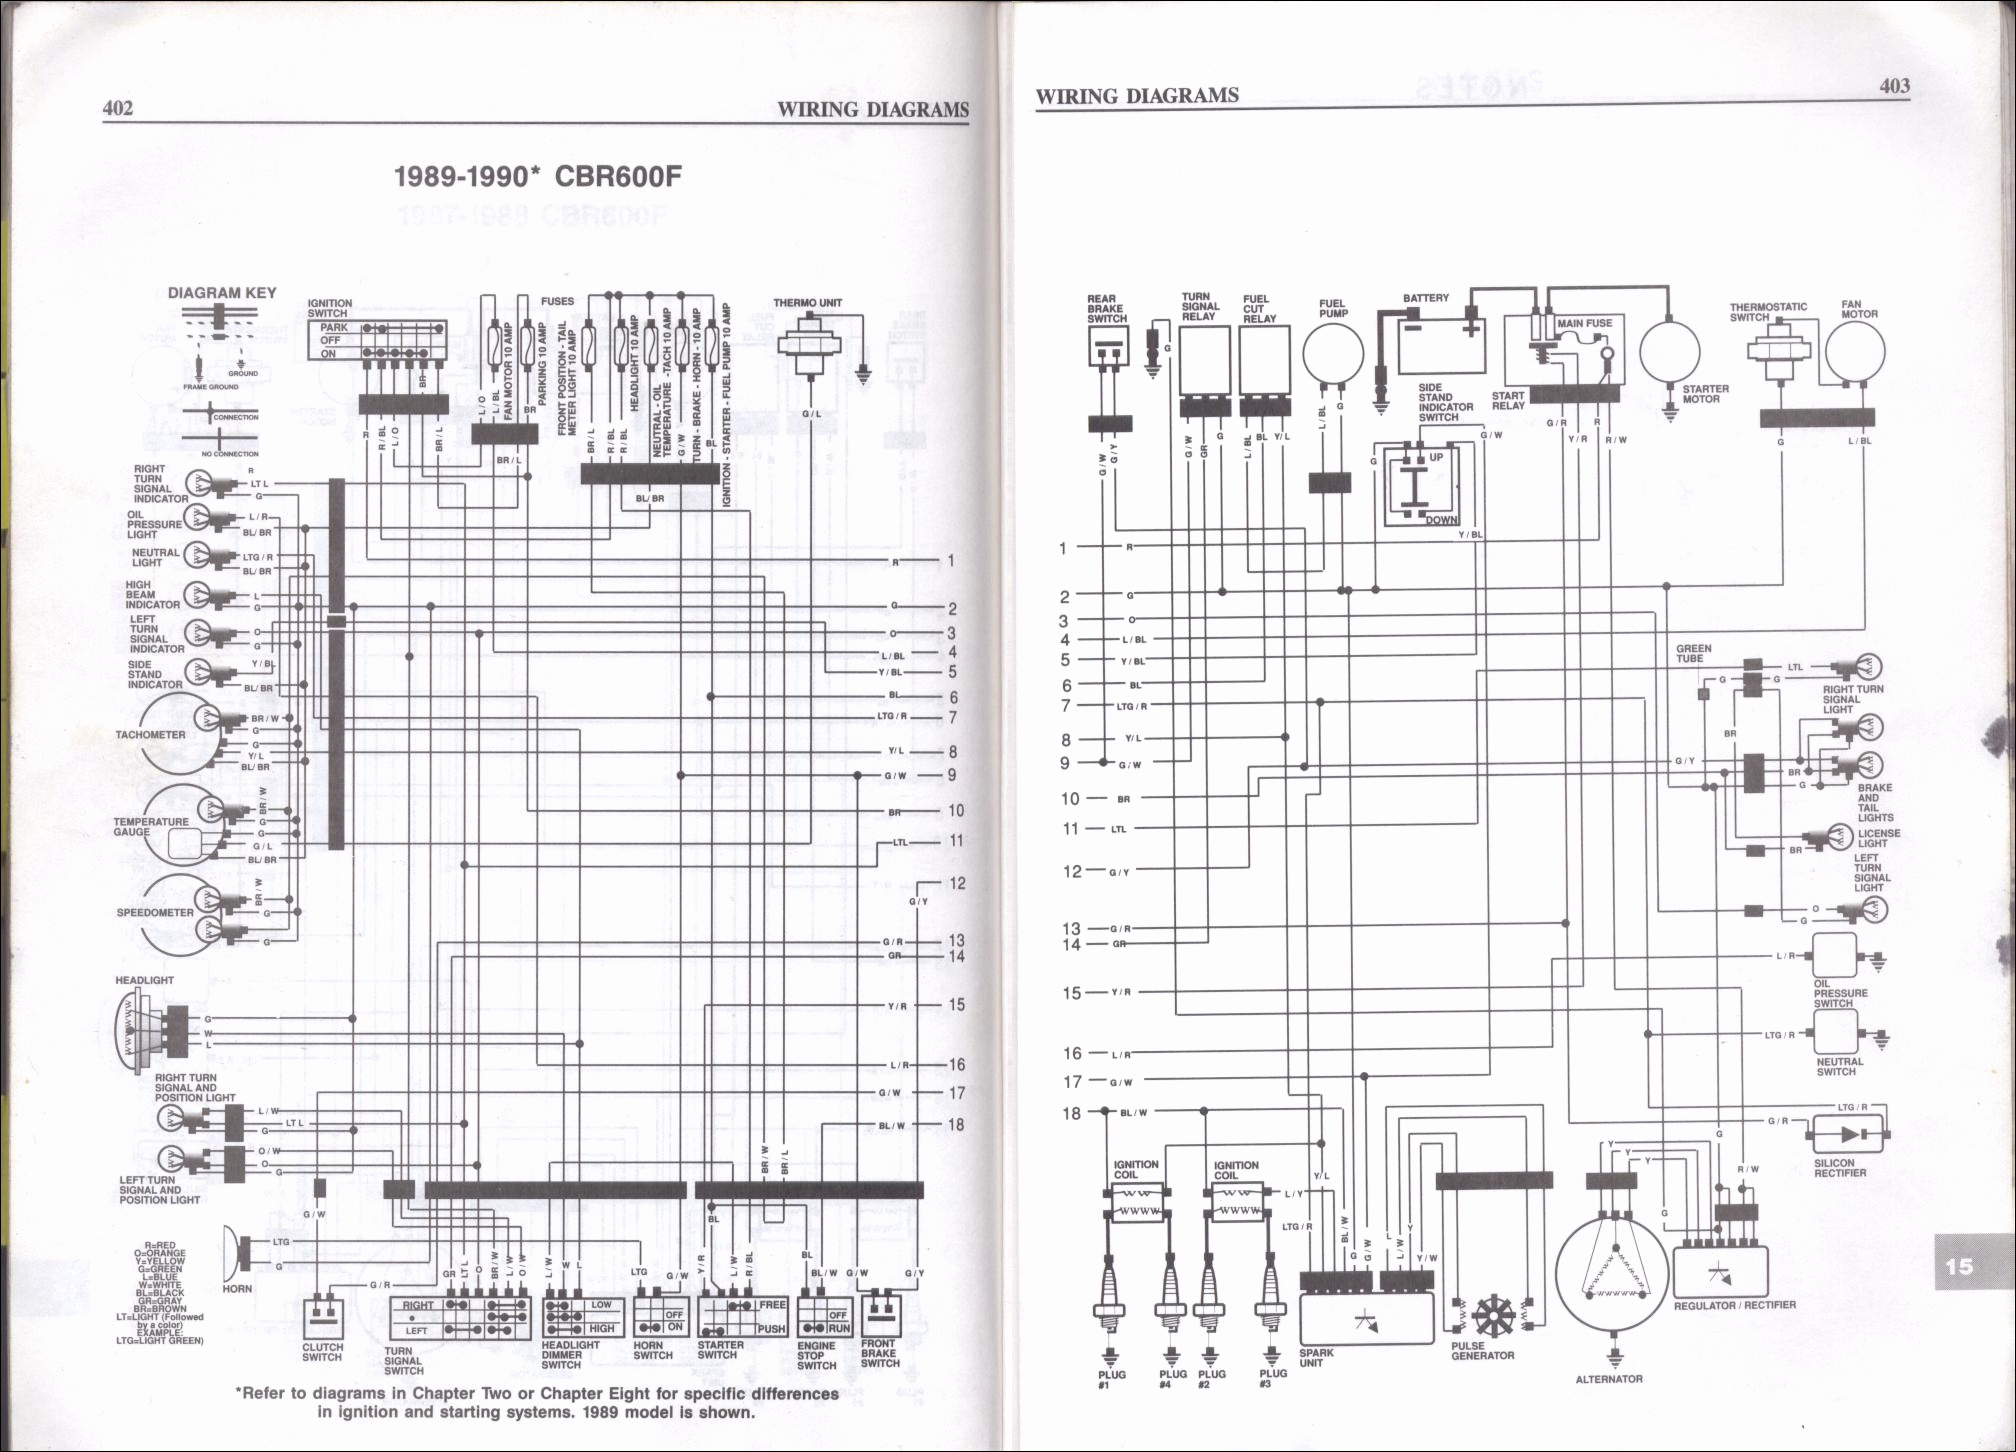 honda c70 wiring diagram images - auto electrical wiring diagram  wiring diagram - dynu